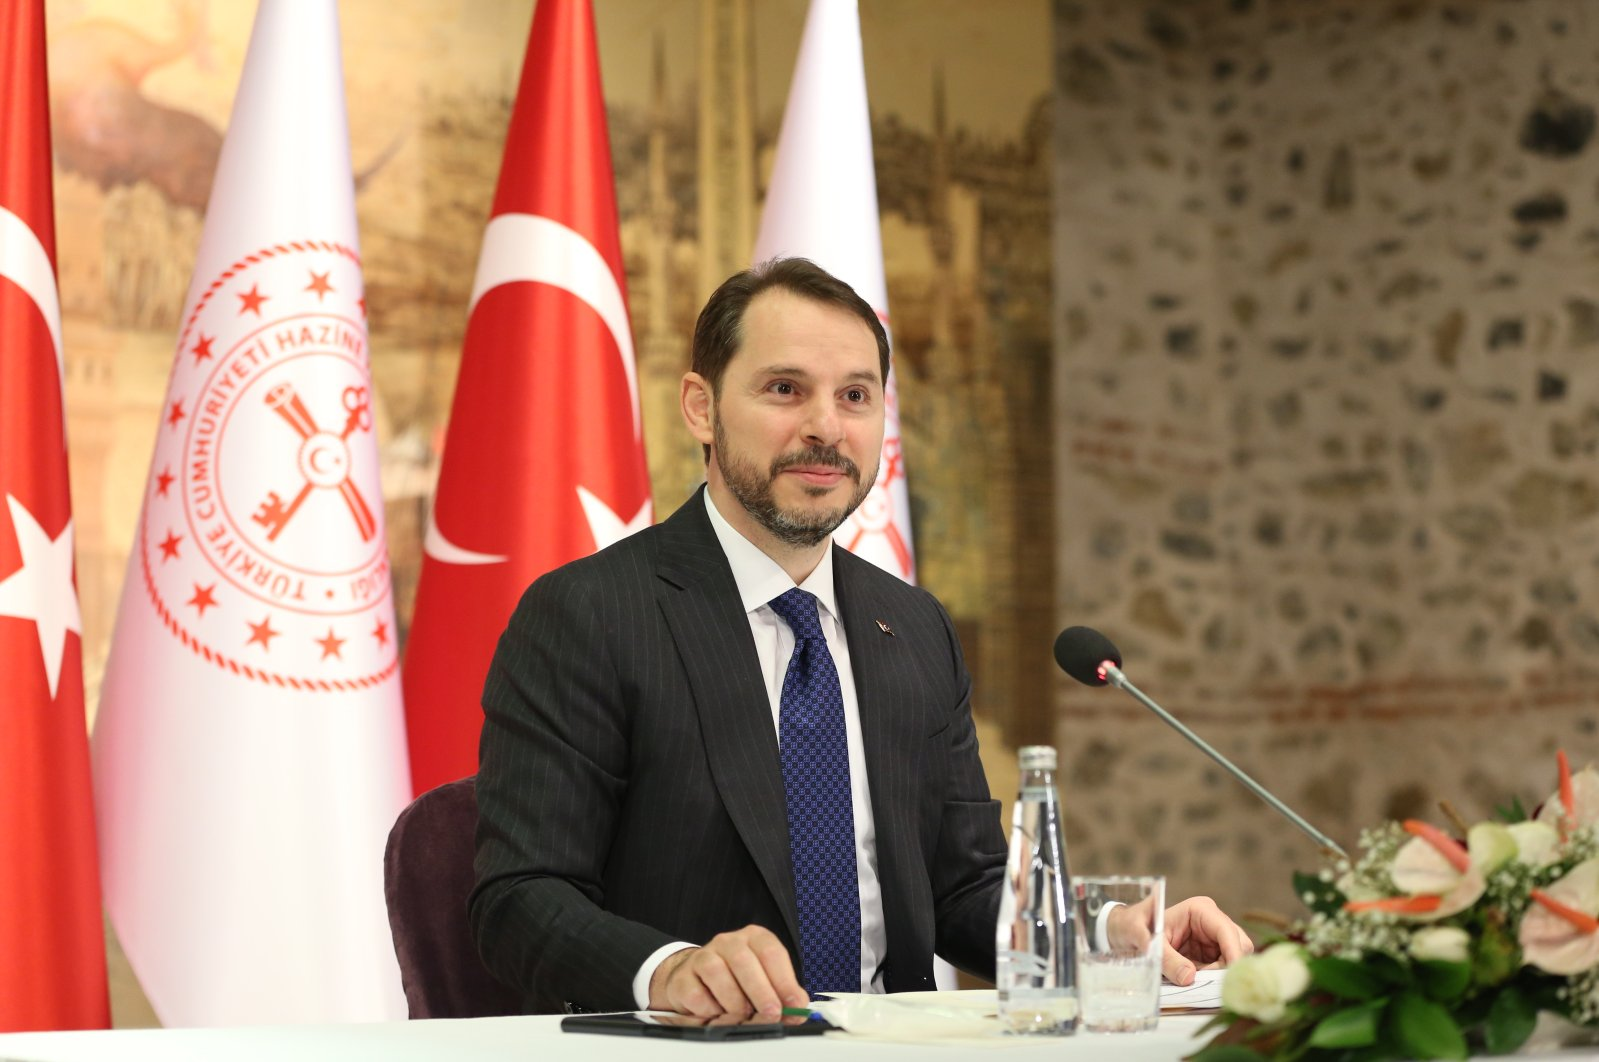 Treasury and Finance Minister Berat Albayrak during a meeting with journalists, Istanbul, Turkey, June 5, 2020. (Treasury and Finance Ministry via AA)